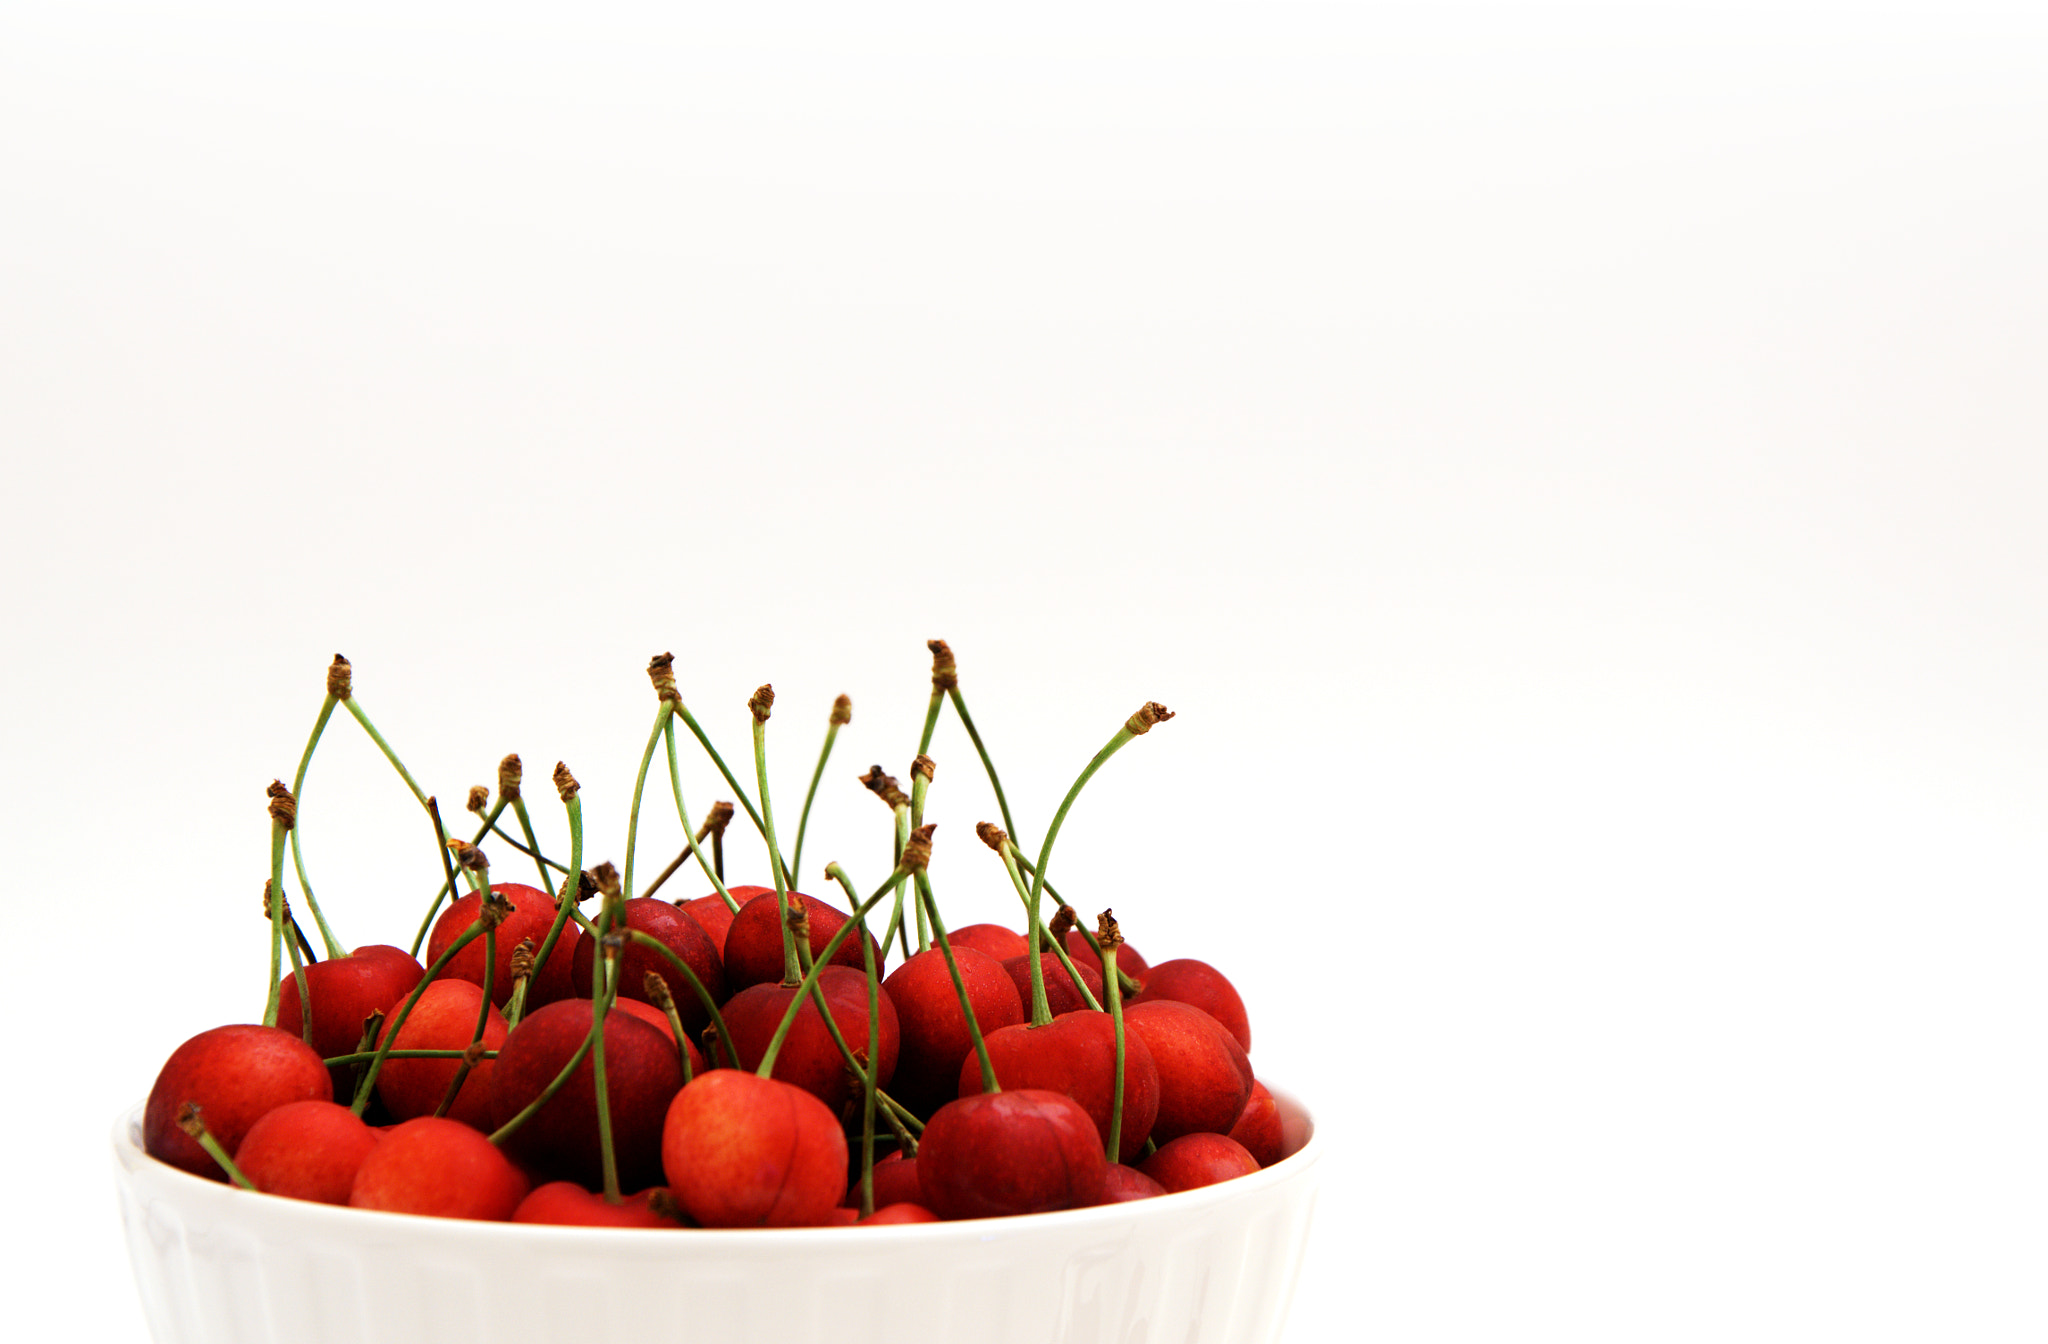 Photograph Cherries by Silvio Guala on 500px